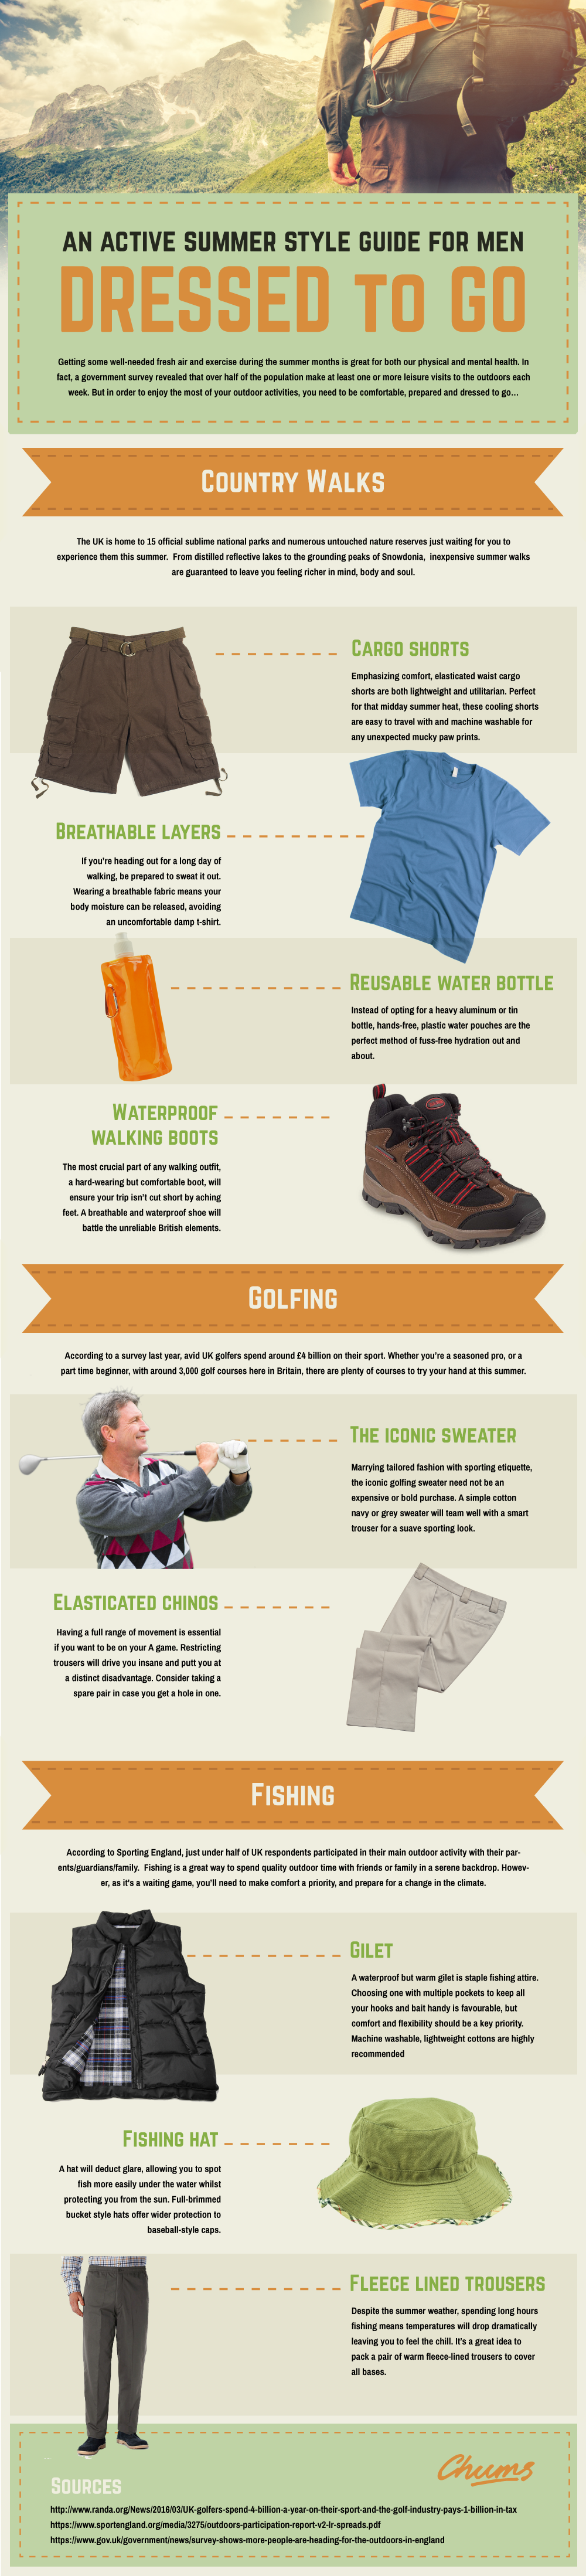 dressed-to-go-infographic (1)